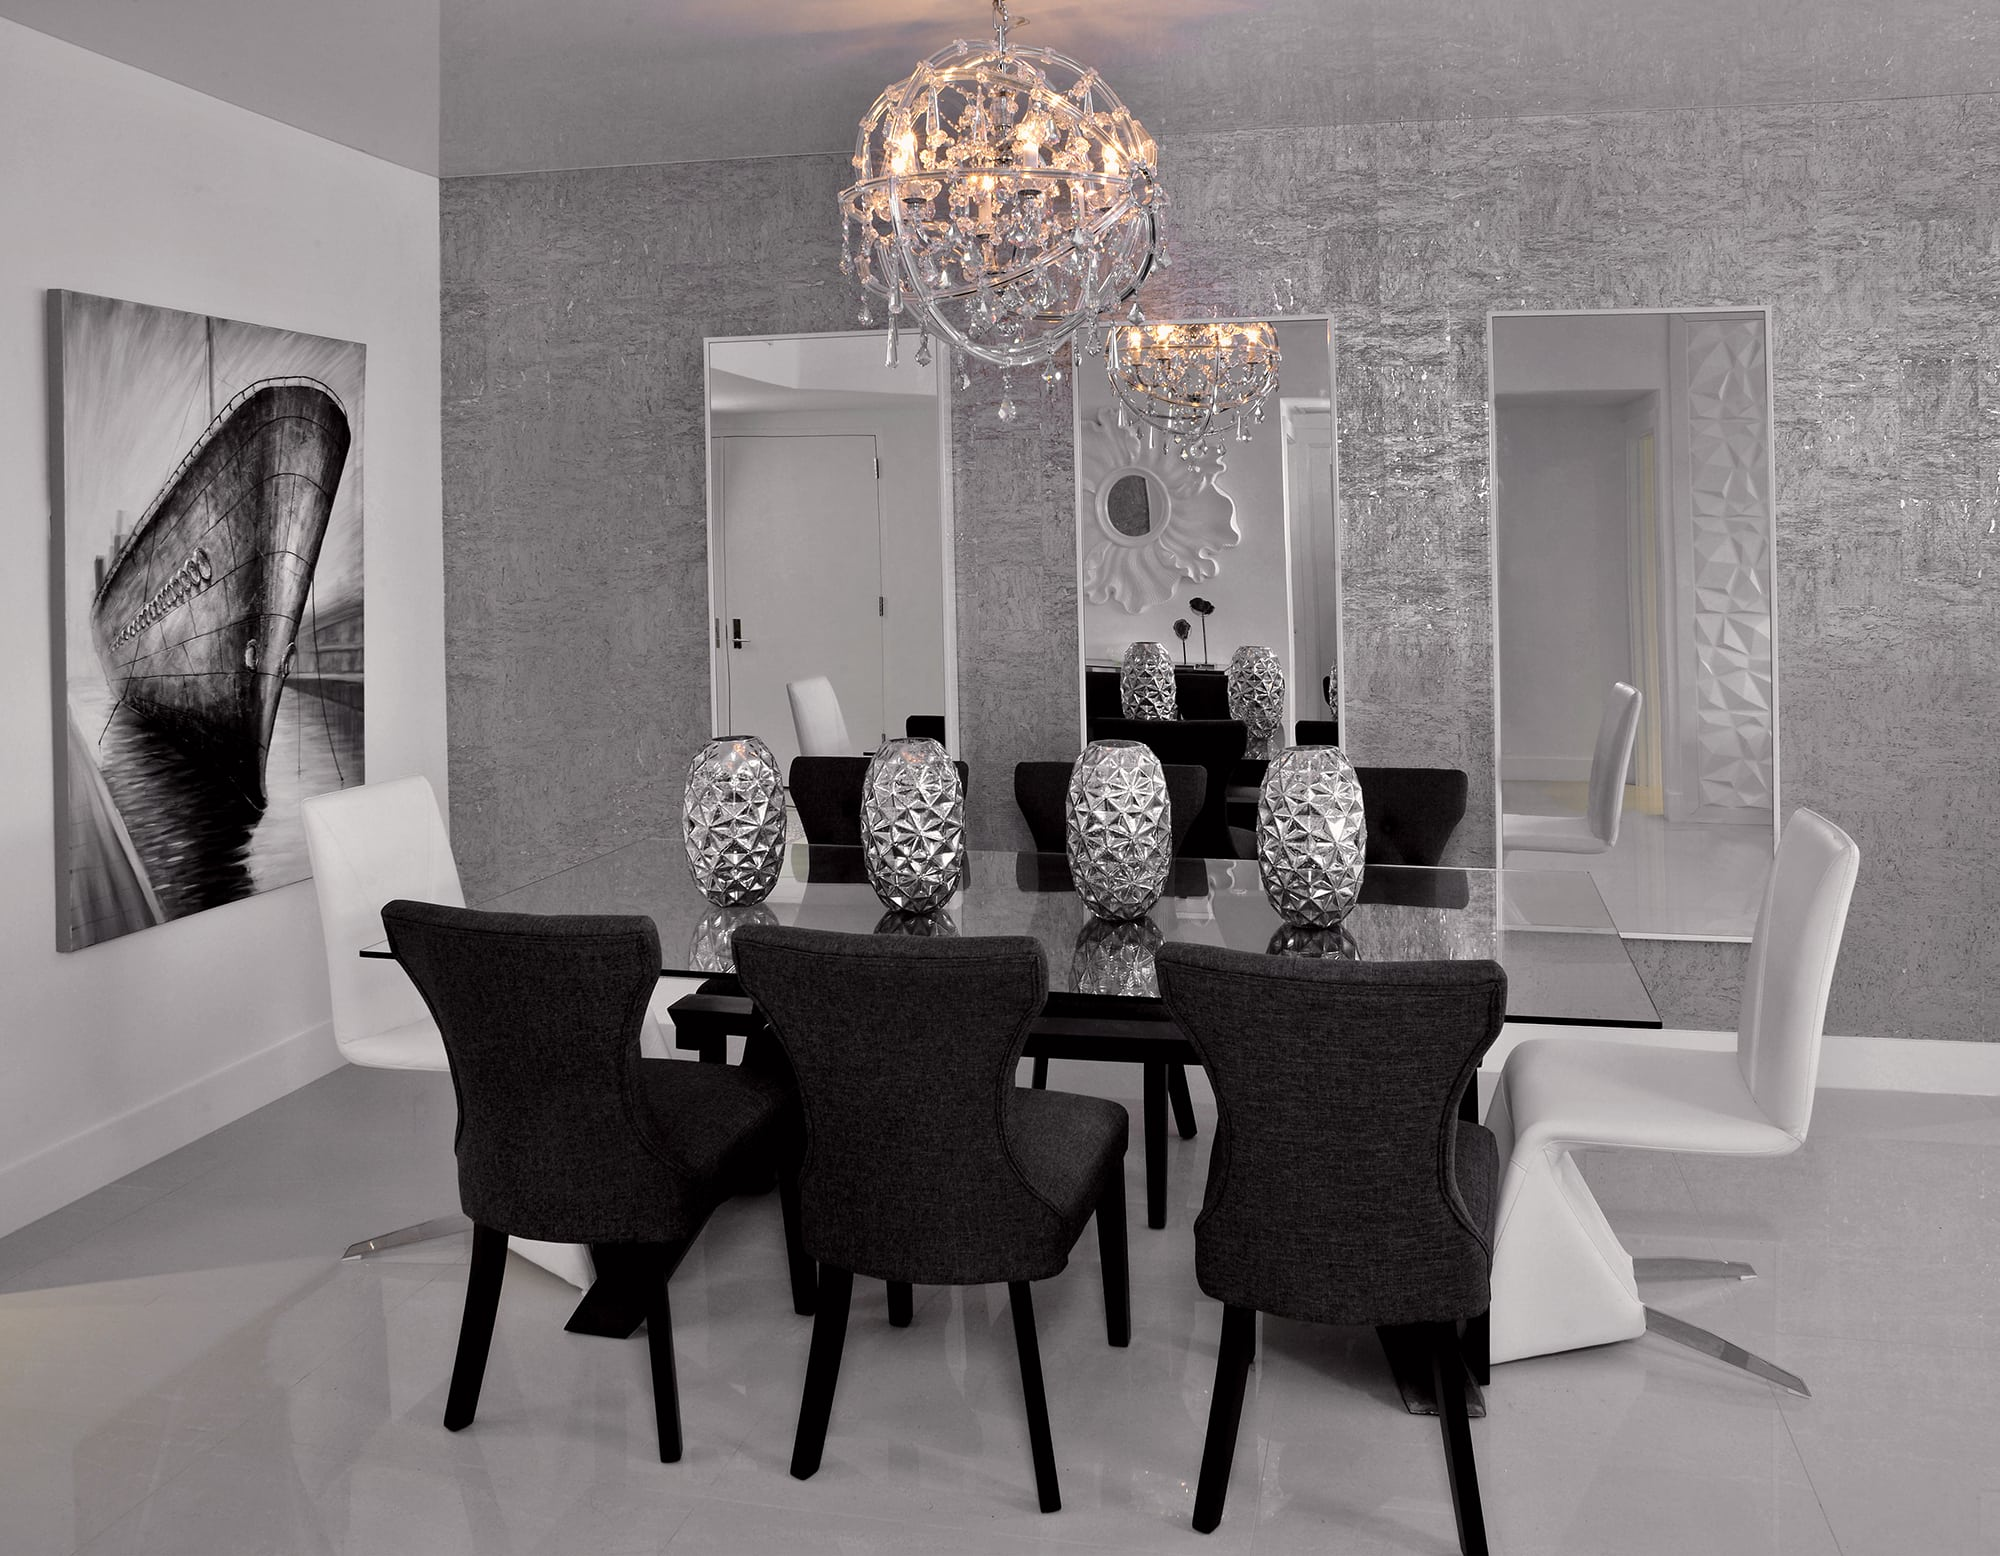 modern white, grey and black interior design of dining room with stretch ceiling and round chandelier